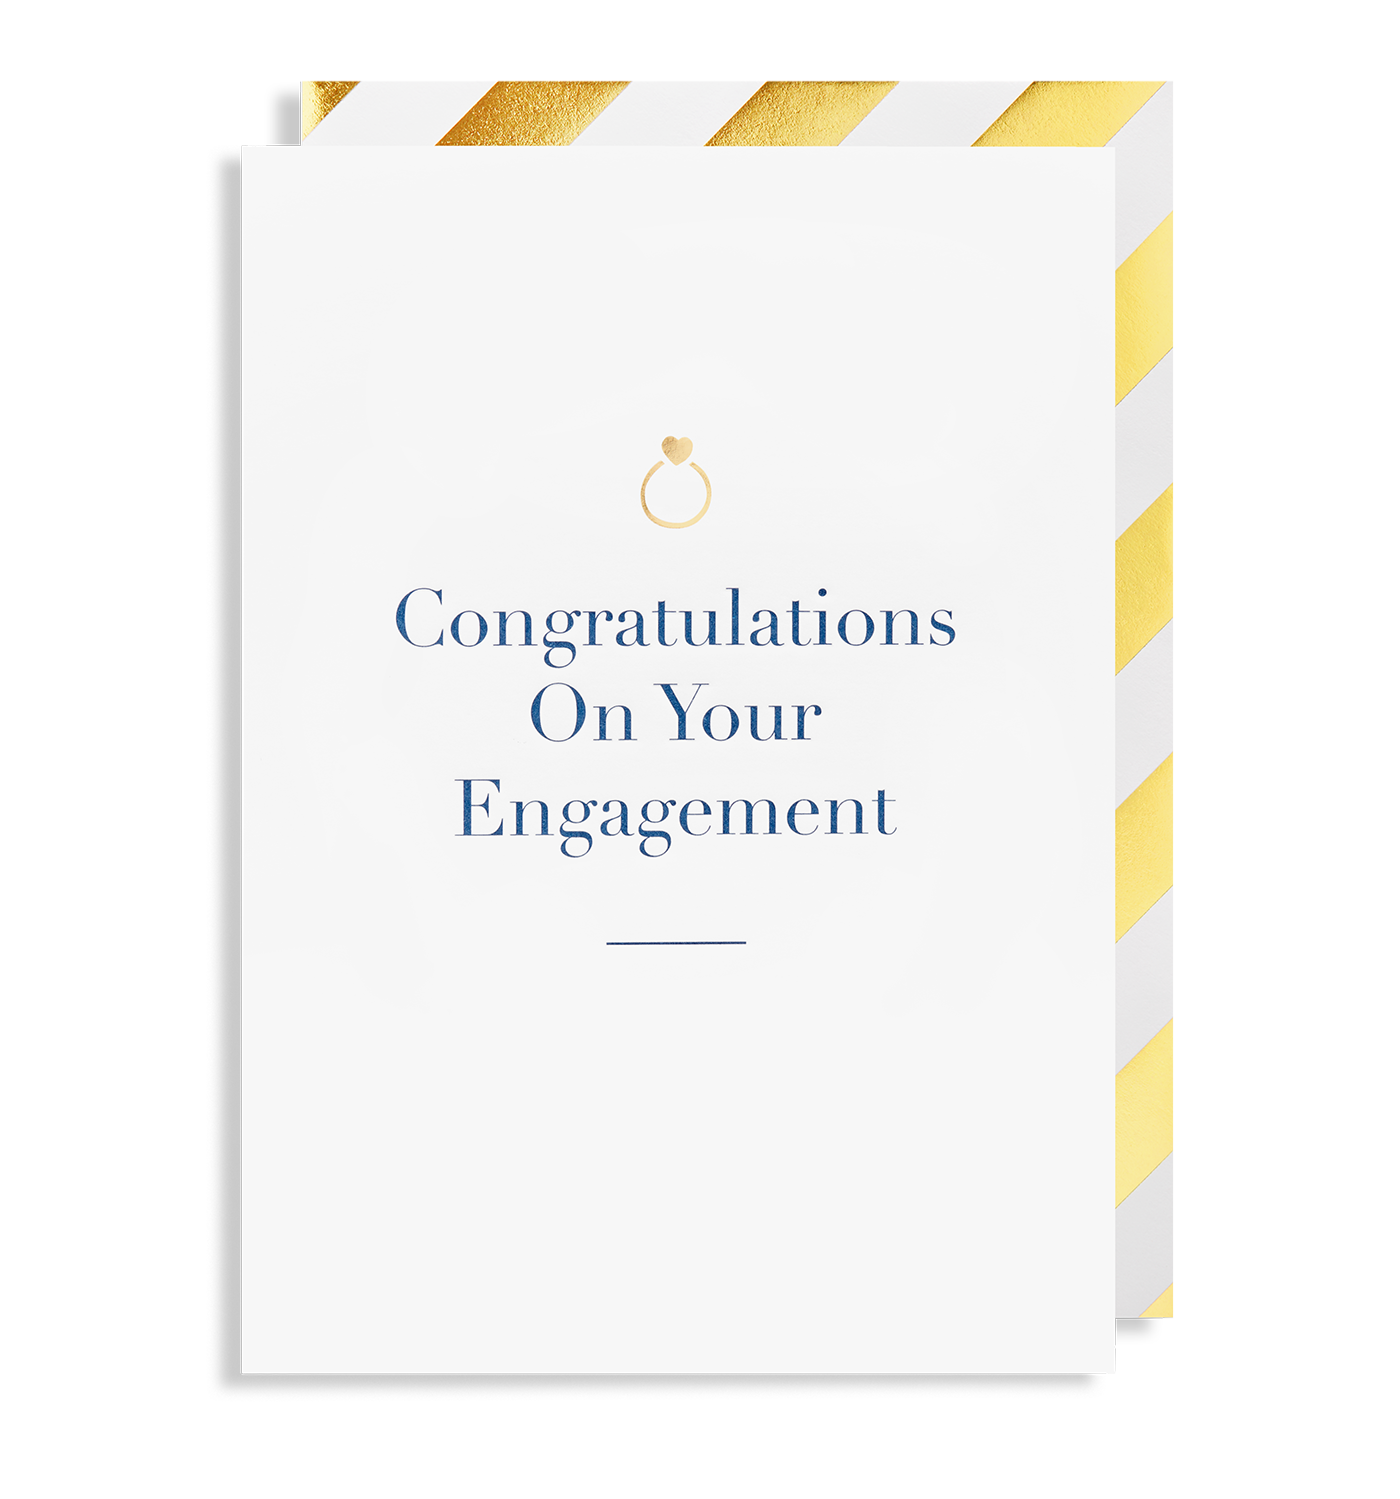 Congratulations On Your Engagement Greeting Card By Charm Lagom Design